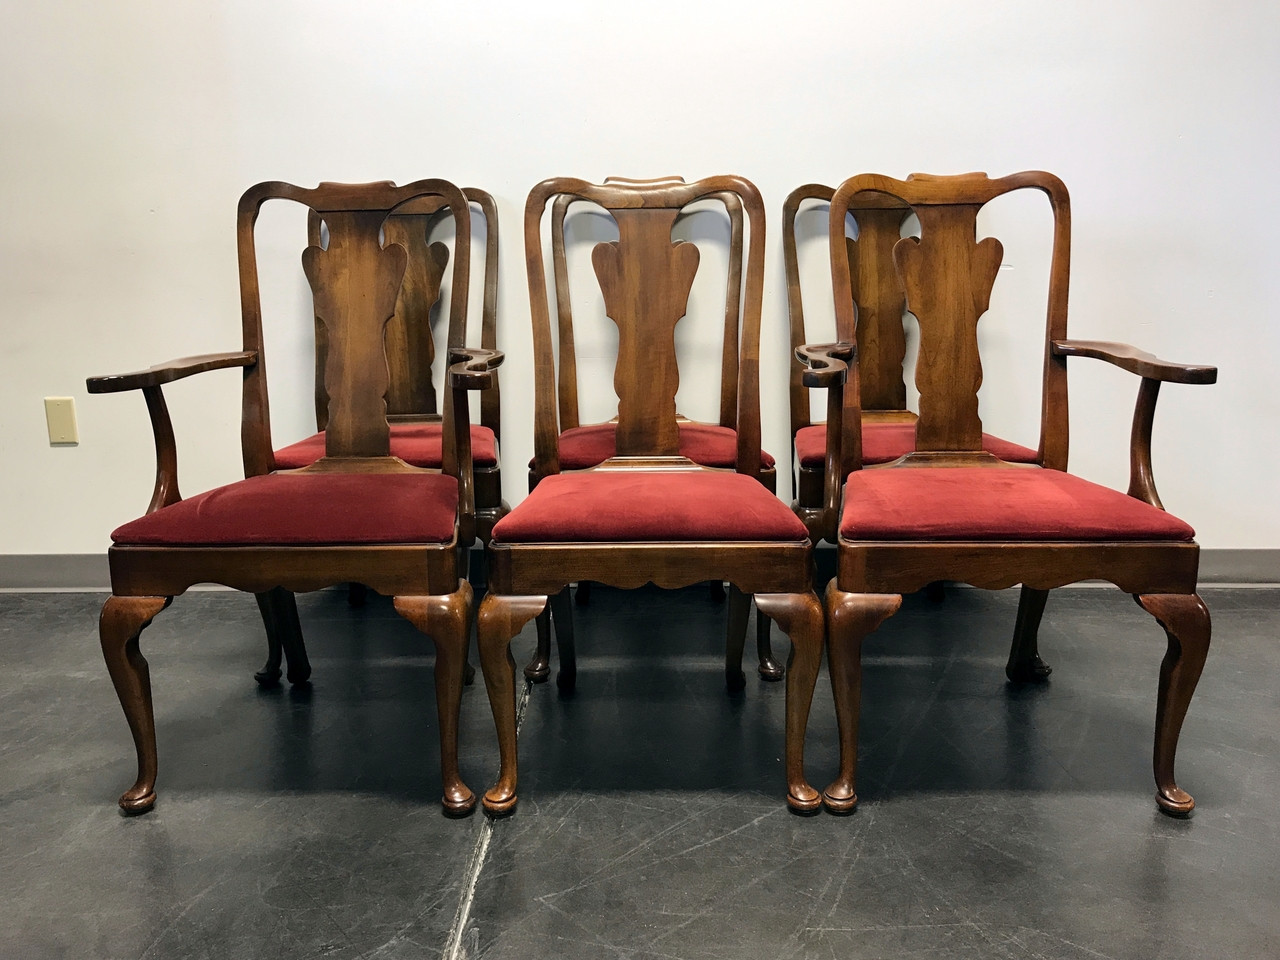 SOLD OUT STATTON Oxford Antique Cherry Queen Anne Dining Chairs